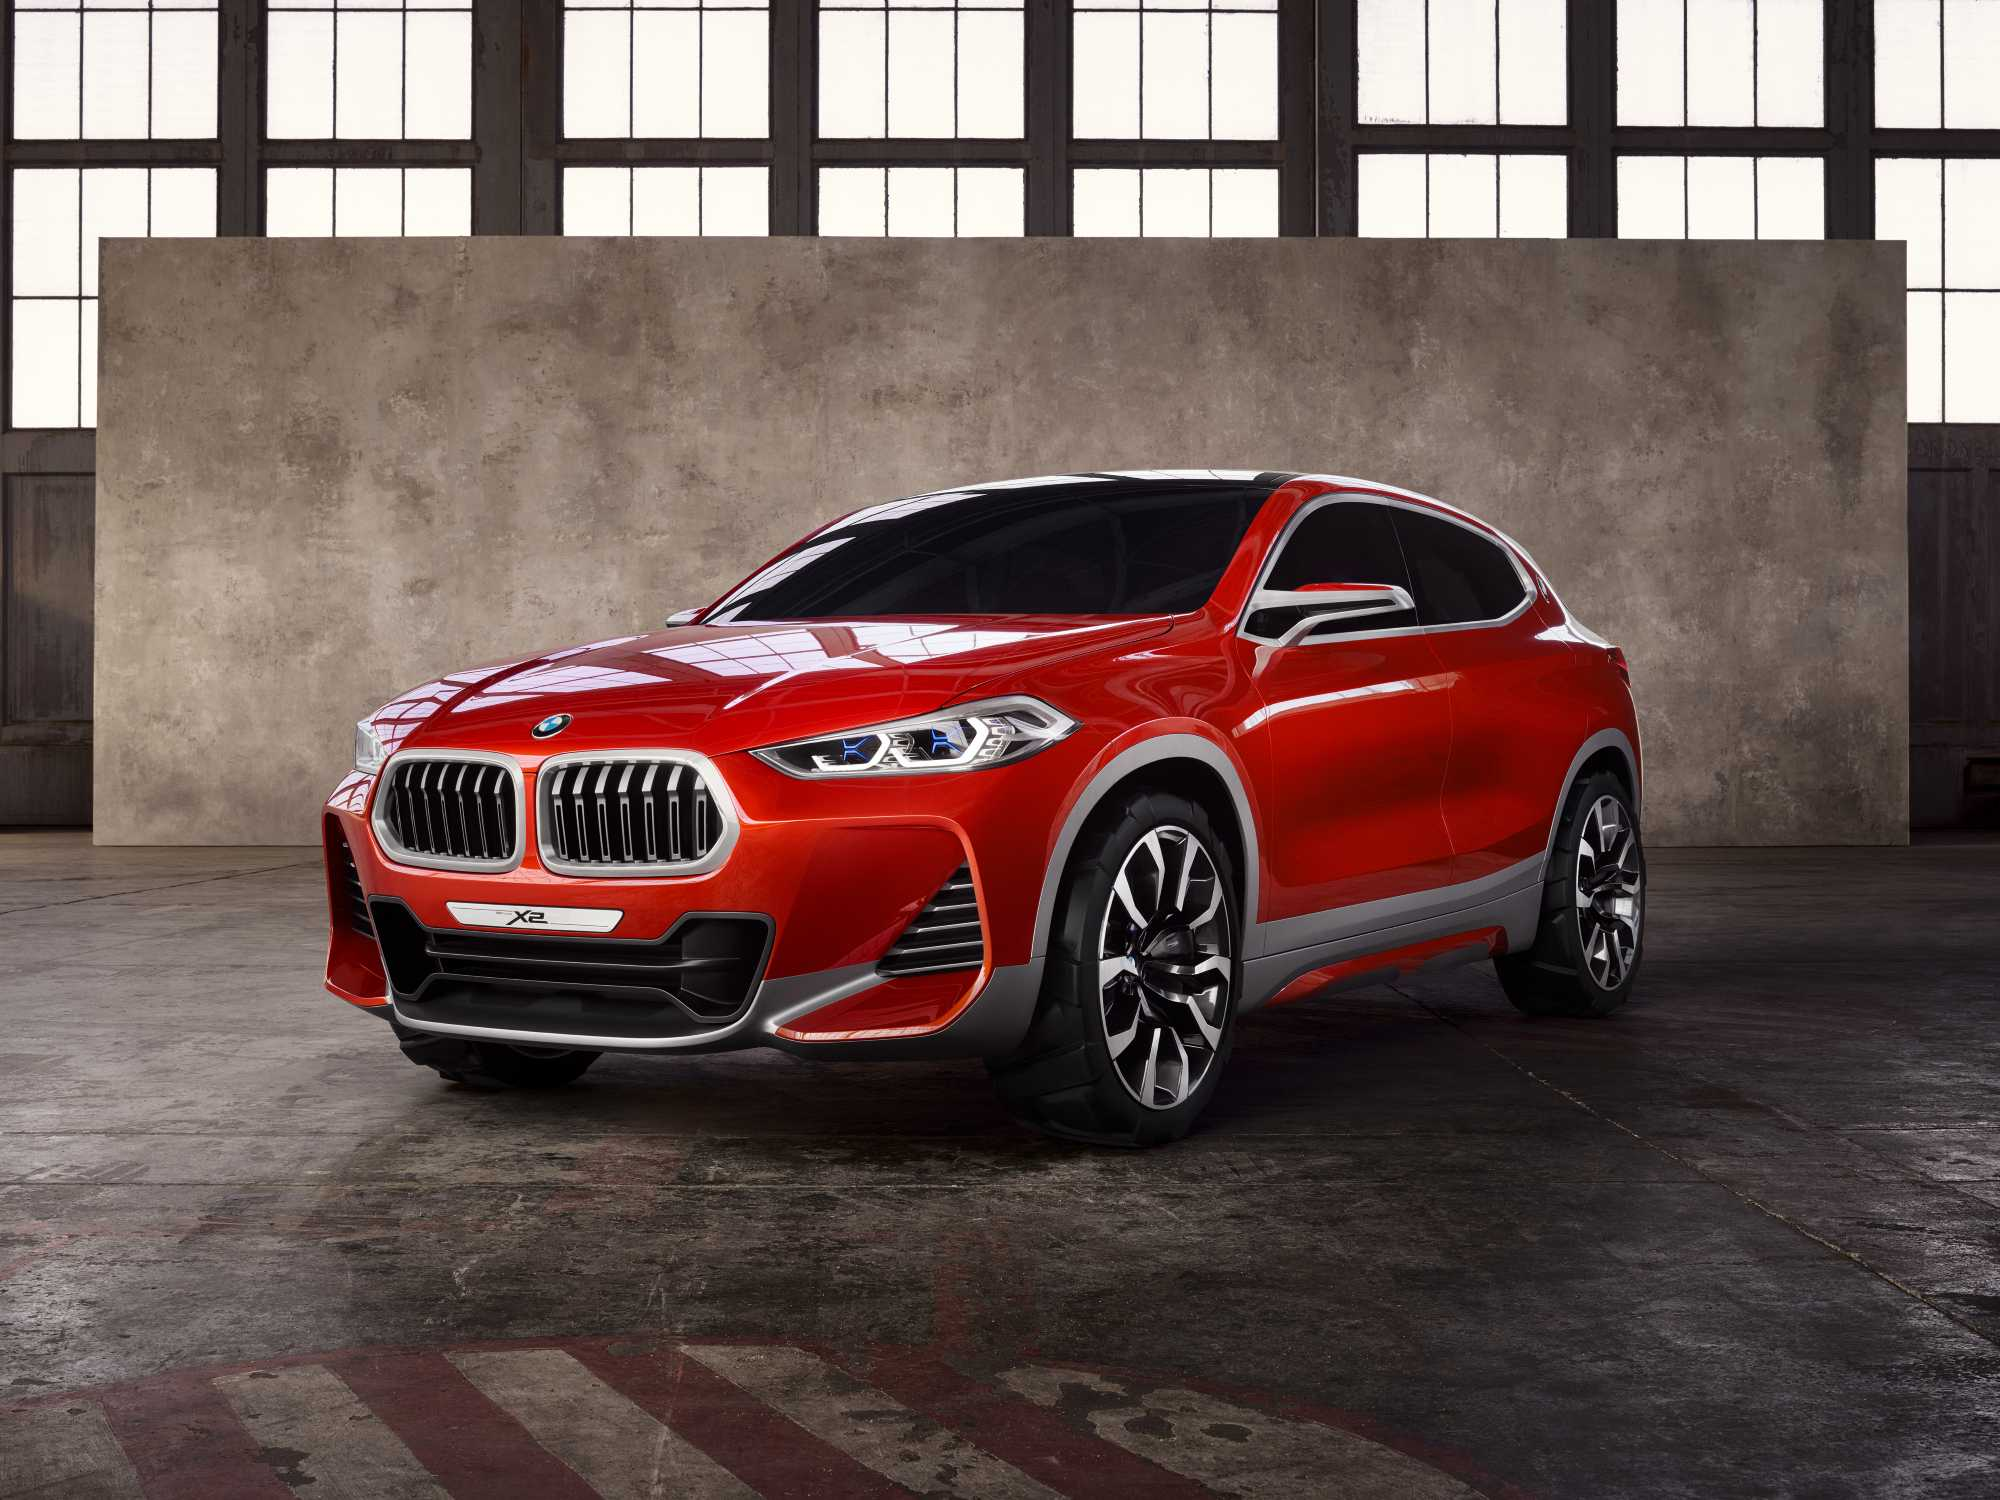 The Bmw Concept X2 A New Dimension To Joy